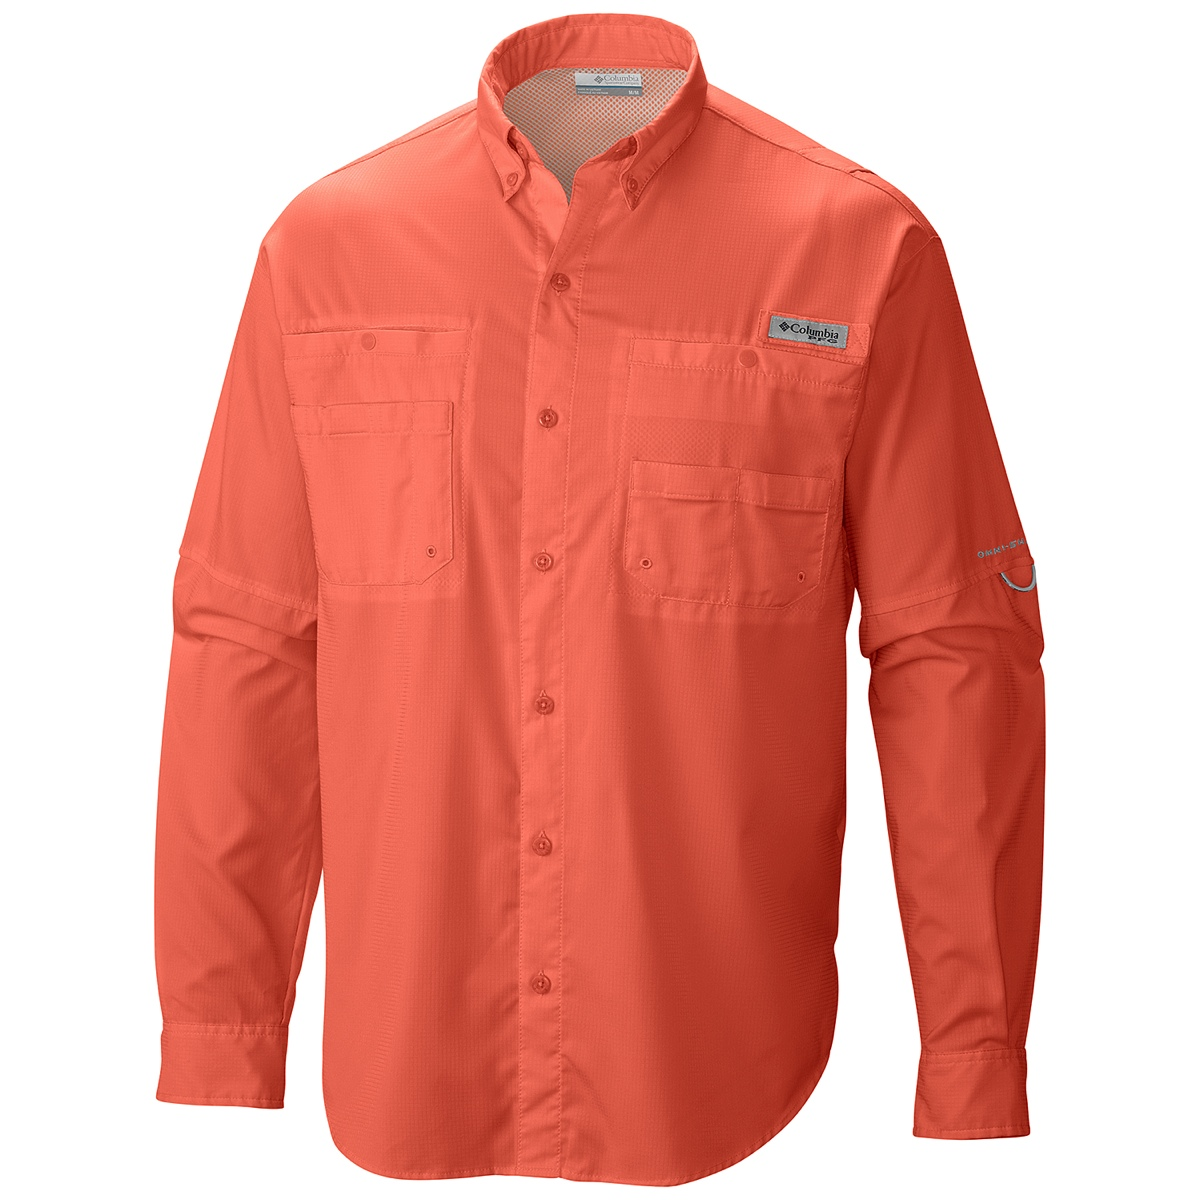 Embroidered 7253 columbia men 39 s tamiami ii long sleeve shirt for Embroidered columbia fishing shirts